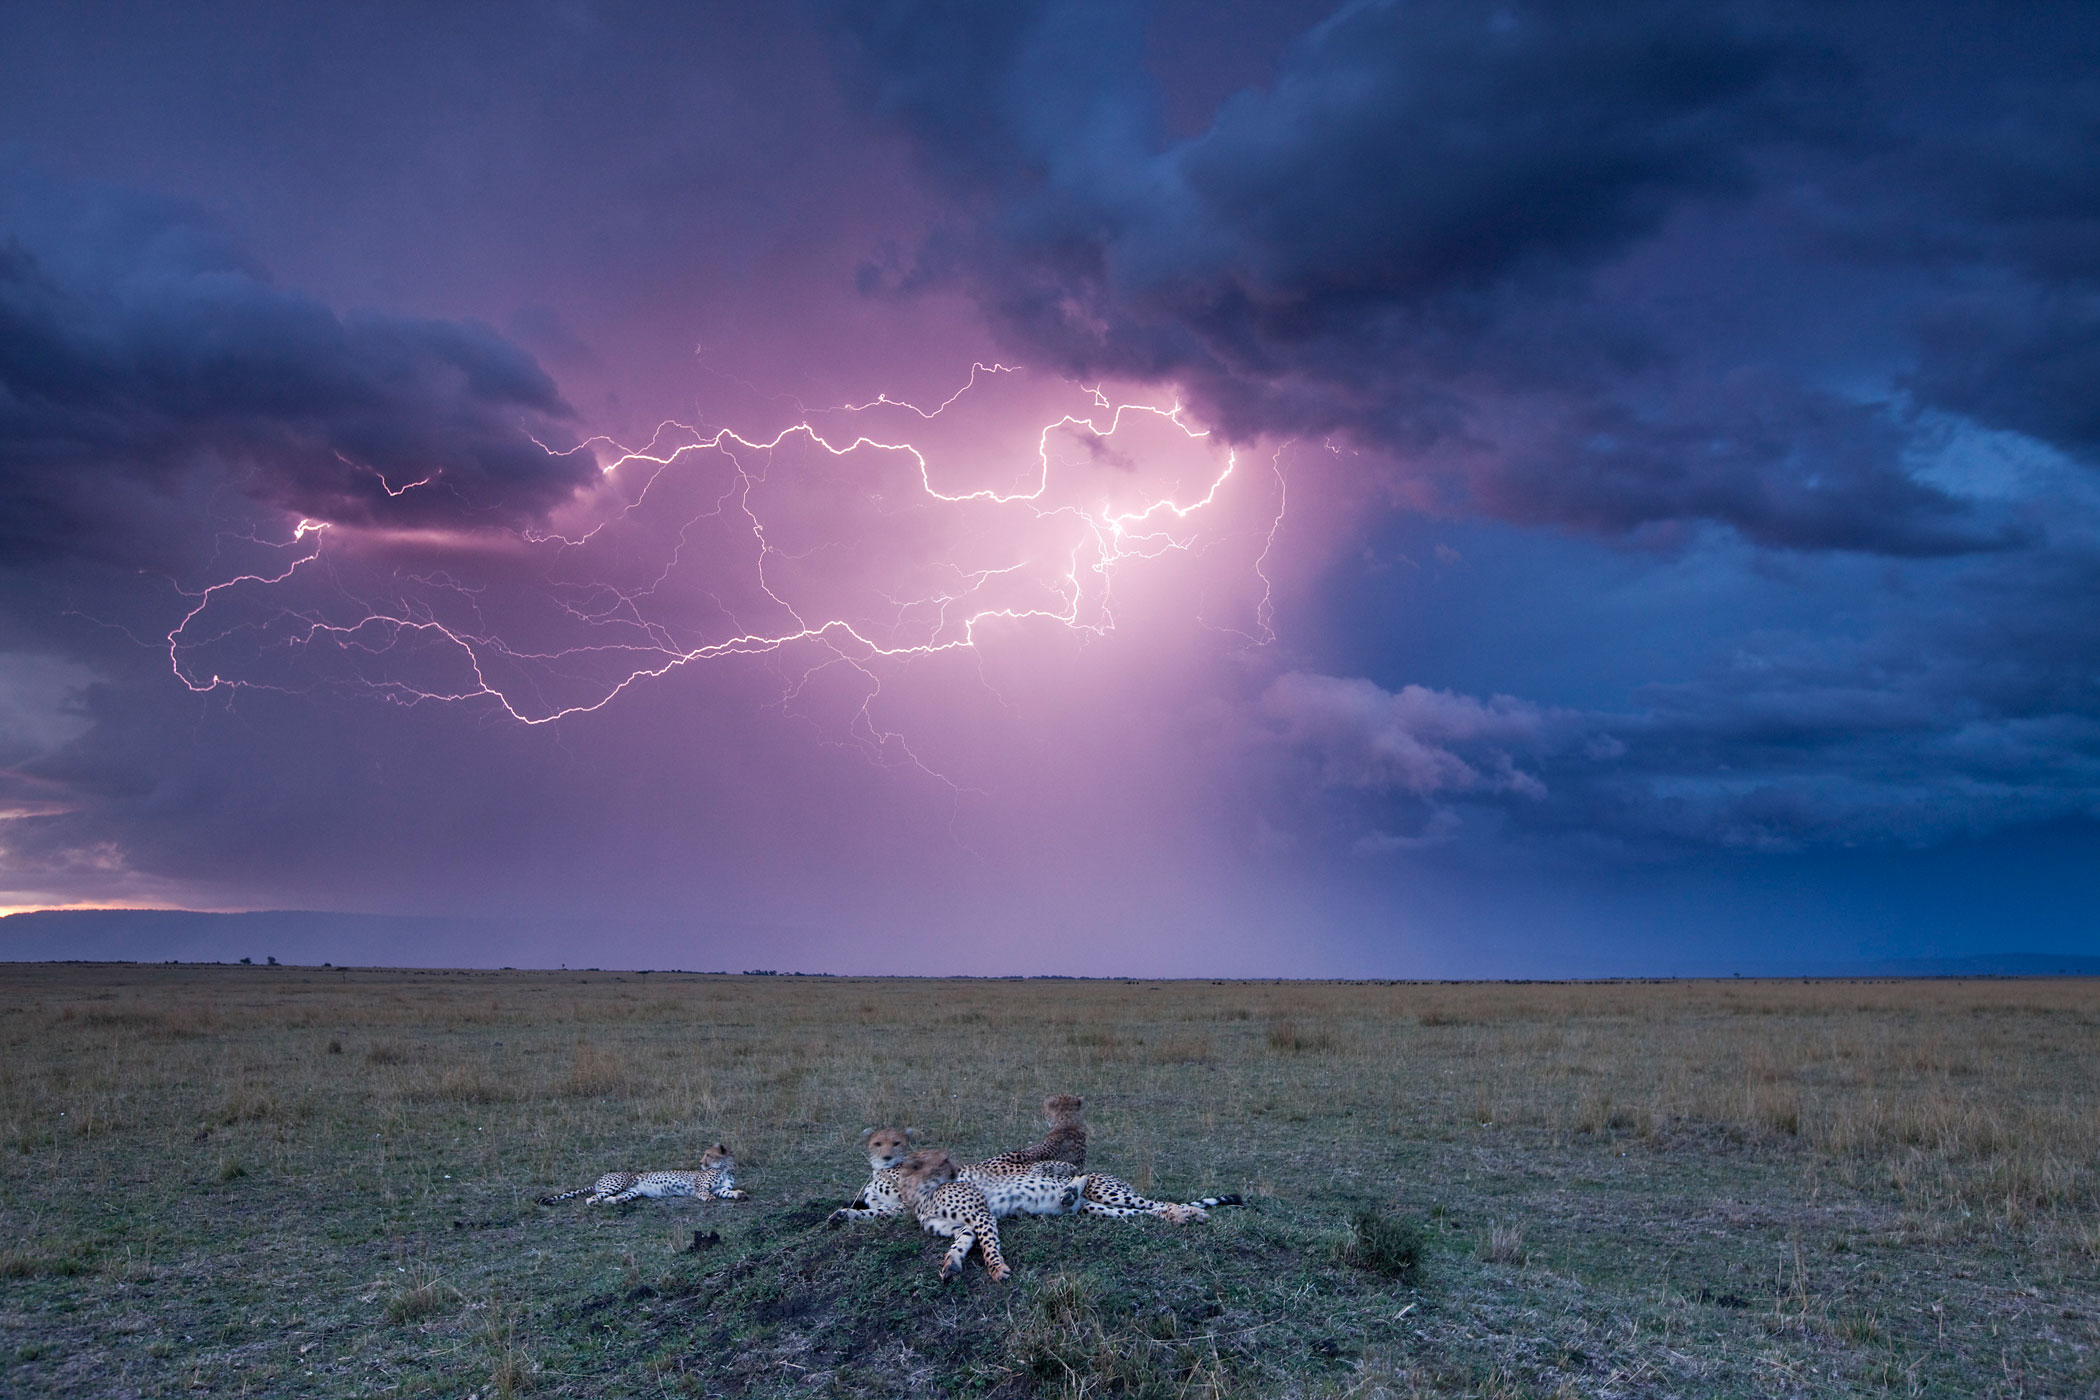 Lightning strikes above a cheetah with adolescent cubs on termite mound in Maasai Mara, Kenya, Sept. 22, 2009.